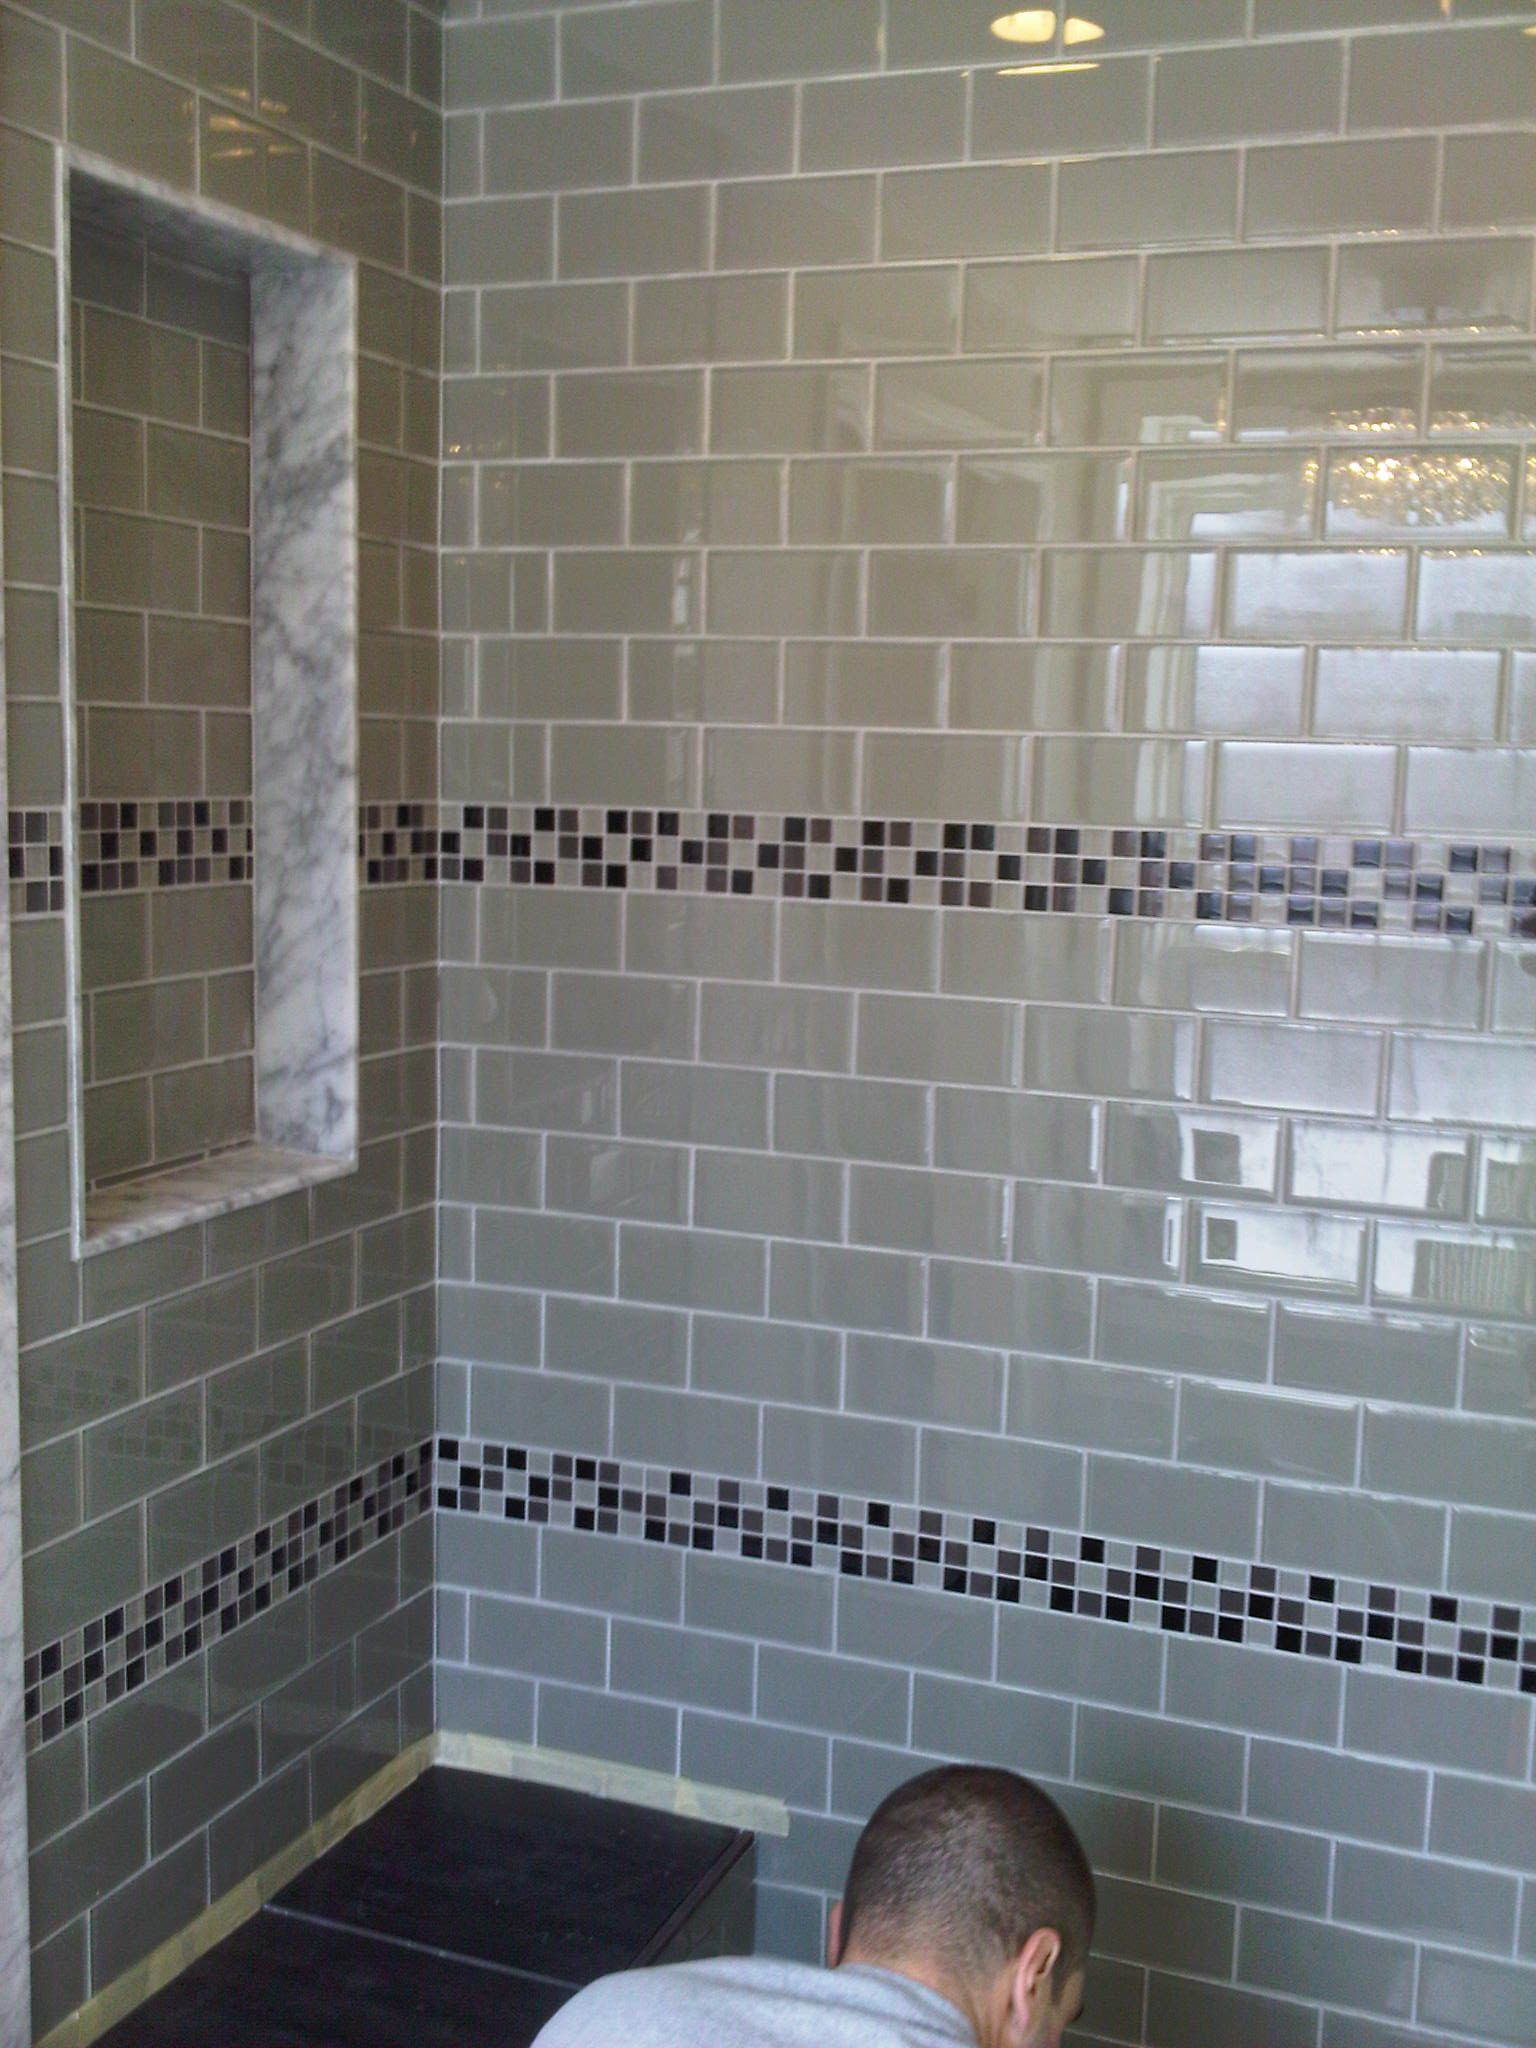 Bathroom Shower Tile Glass Subway Tile On Walls With Small Floor